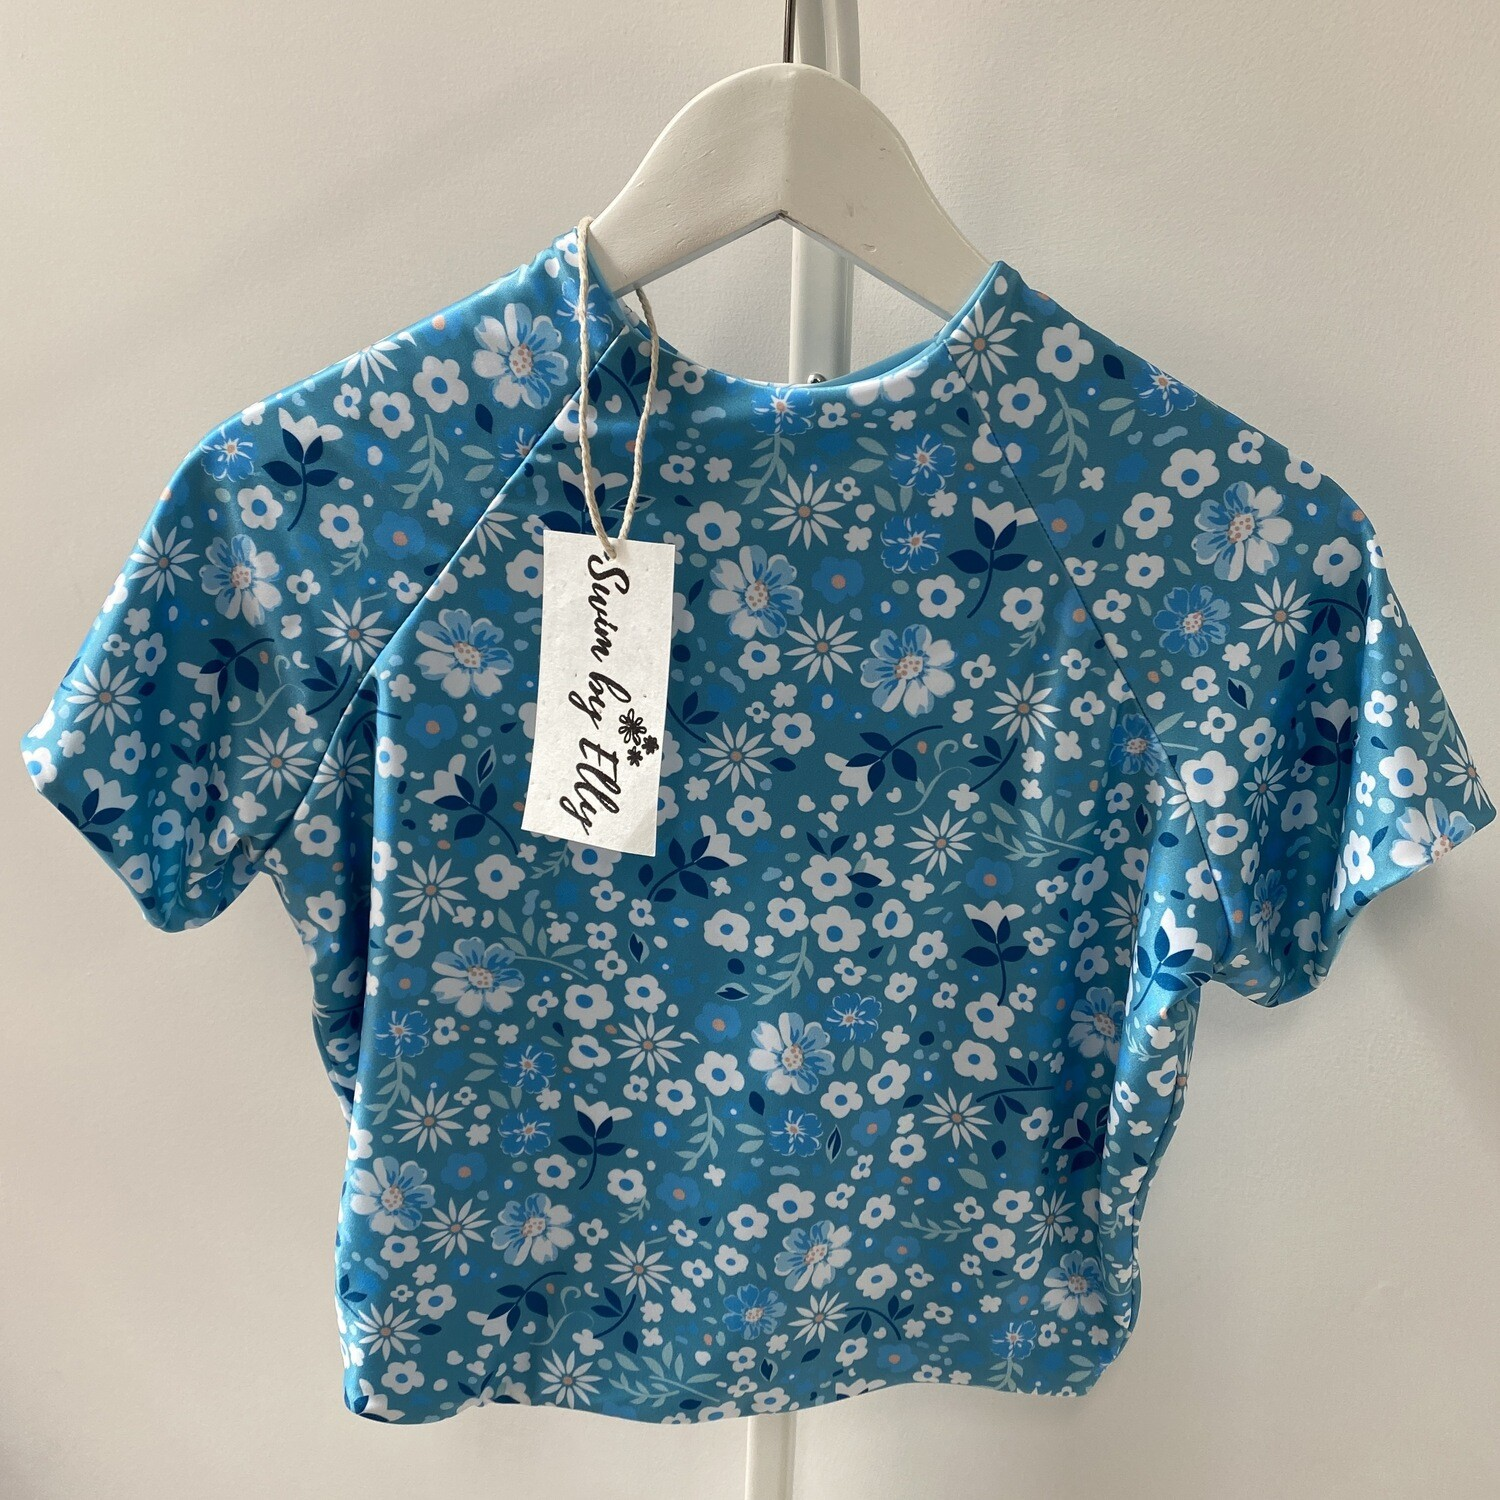 Daisy Top Short Sleeve + Cropped (SIZE L) Blue Floral + Sky